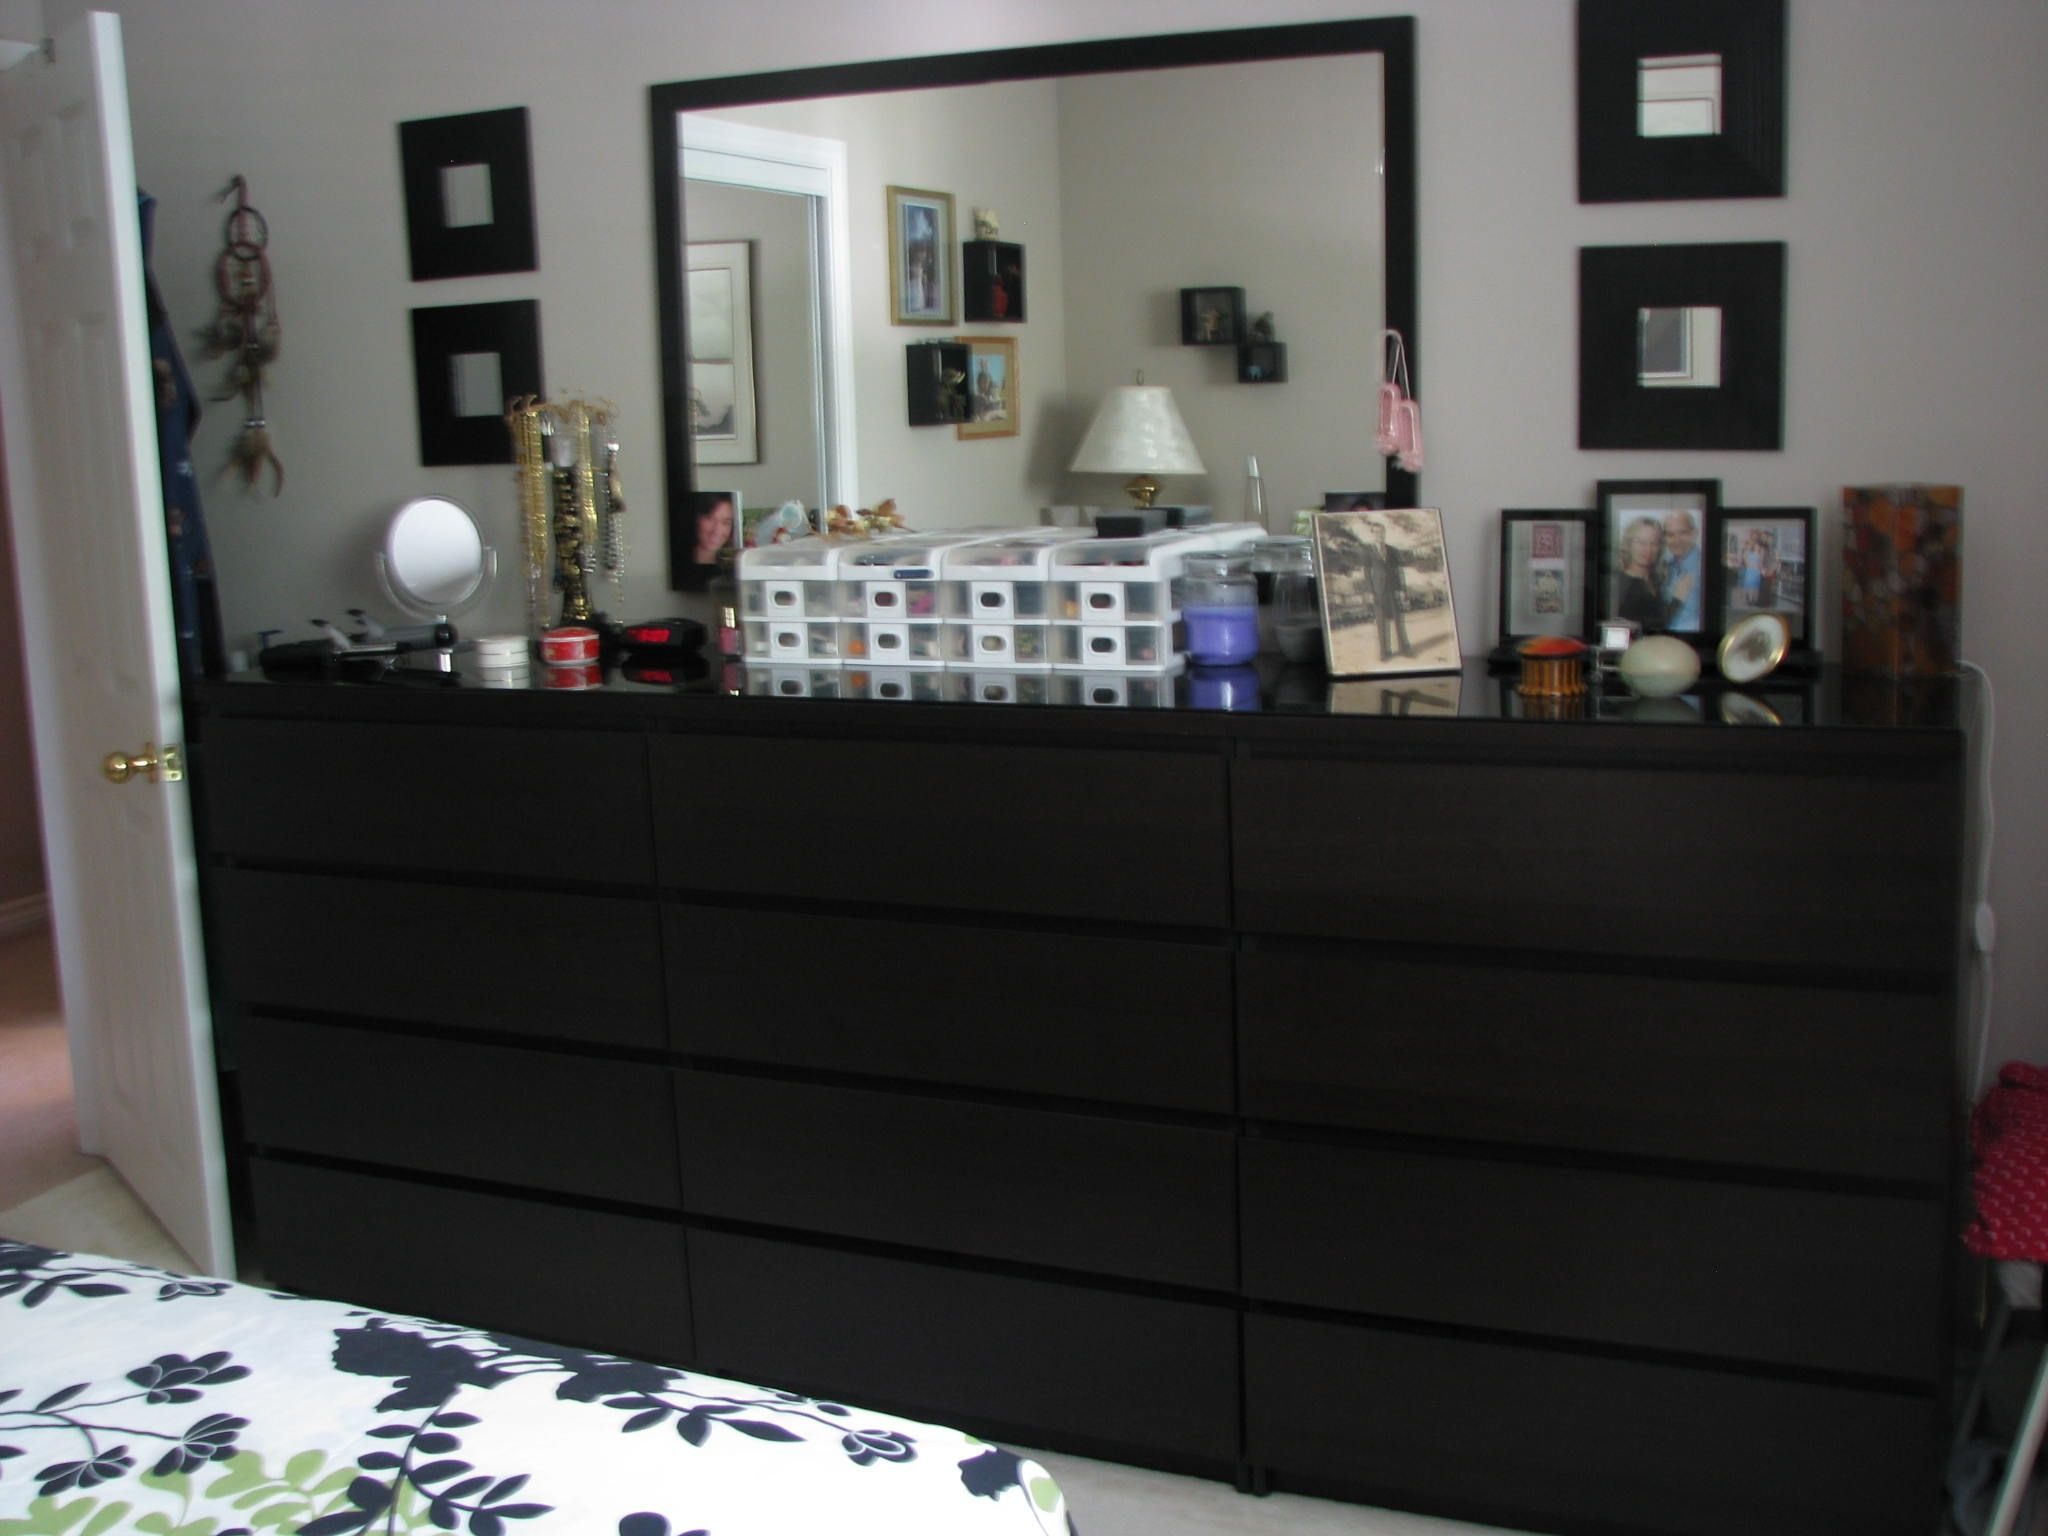 Ikea Is Not So Bad 3 X 4 Drawer Malm Dressers In Brown Black